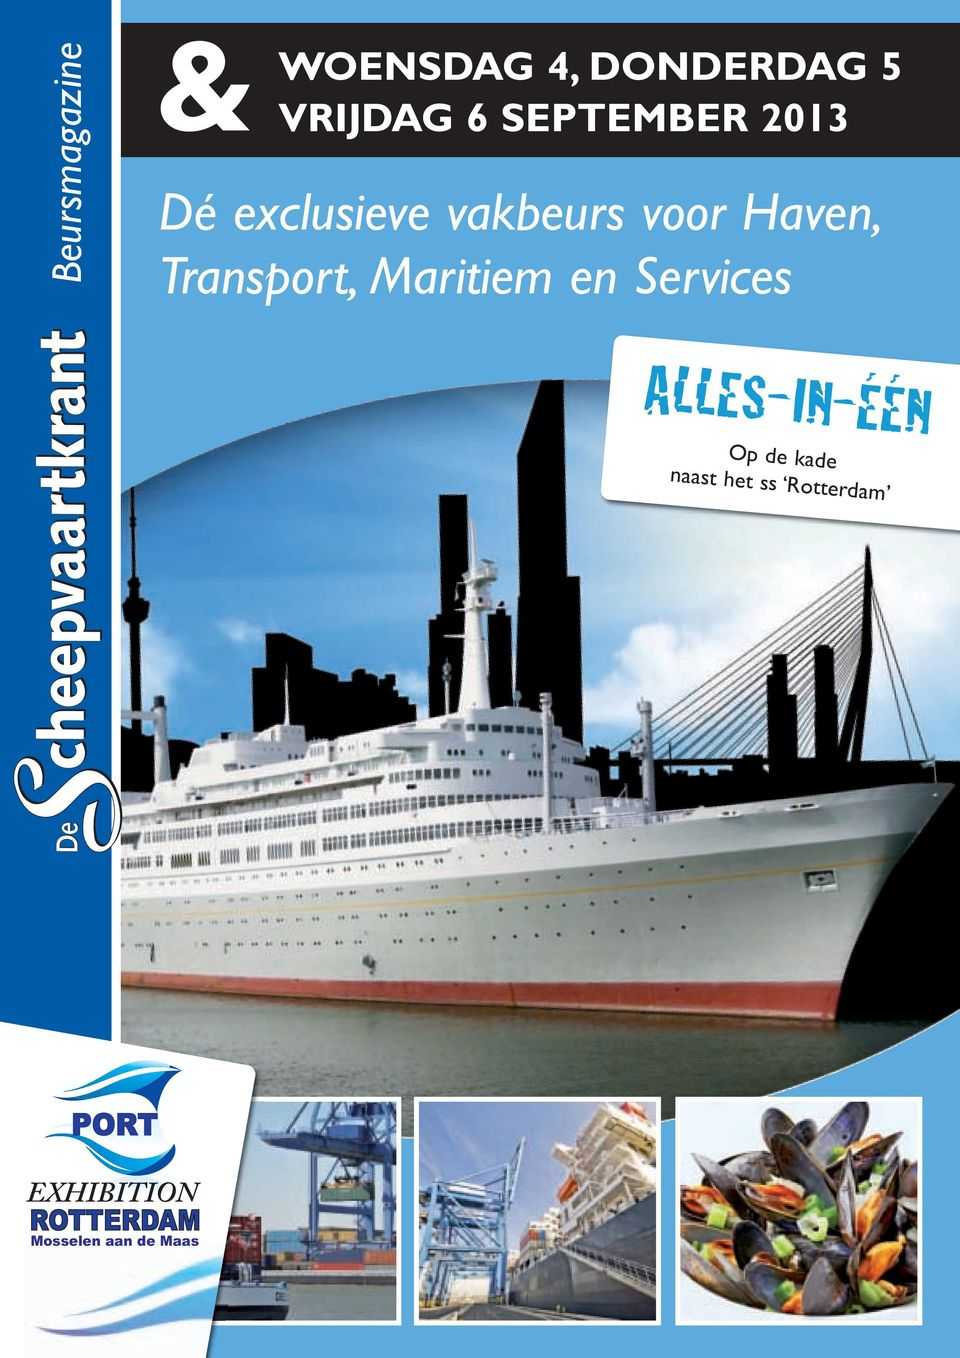 Transport, Maritiem en Services ALLES-IN-ÉÉN Op de